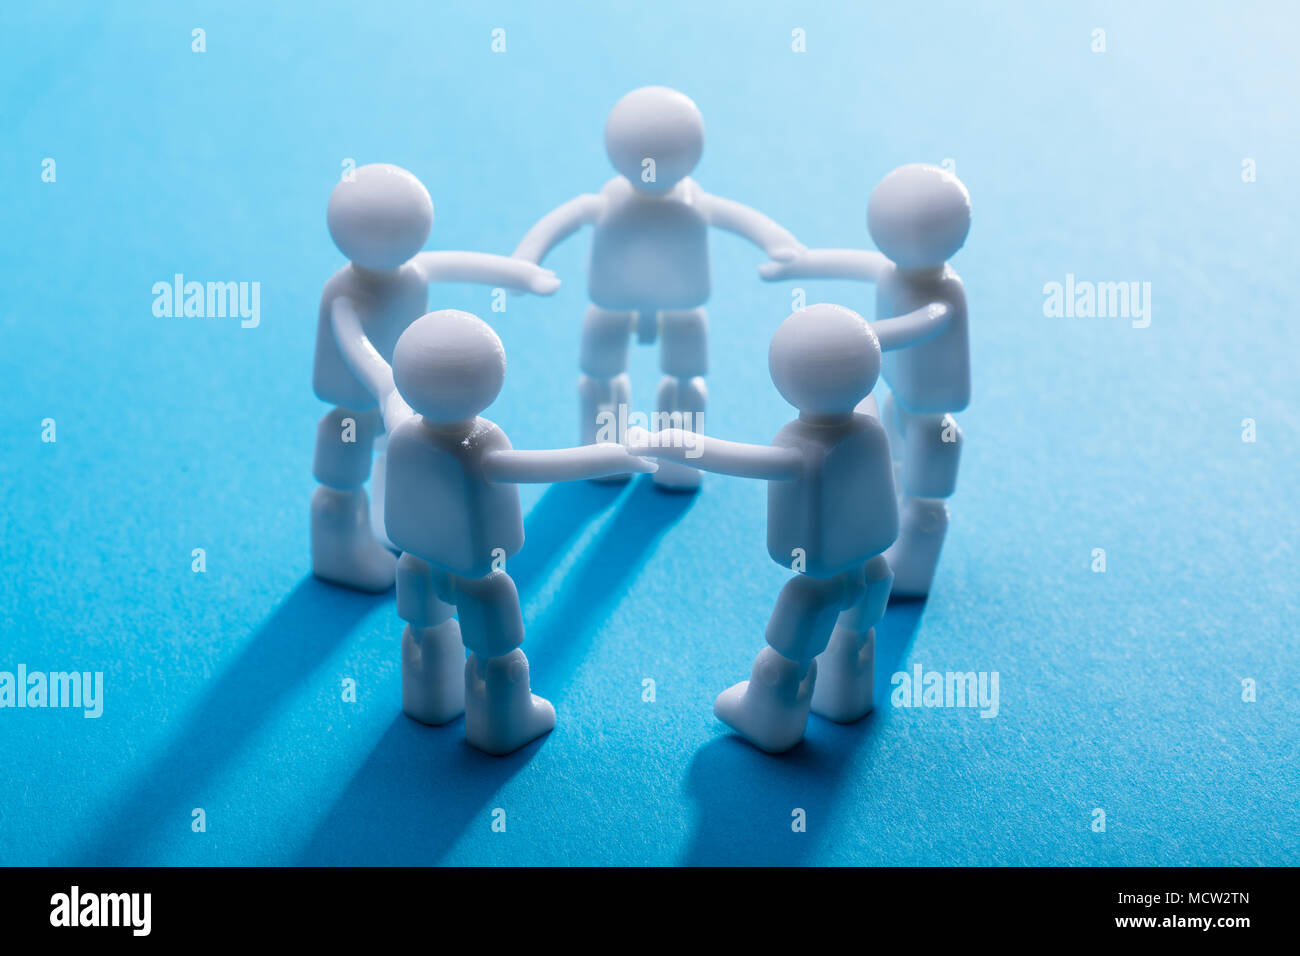 Close-up Of Human Figures Holding Their Hands Standing On Blue Background - Stock Image